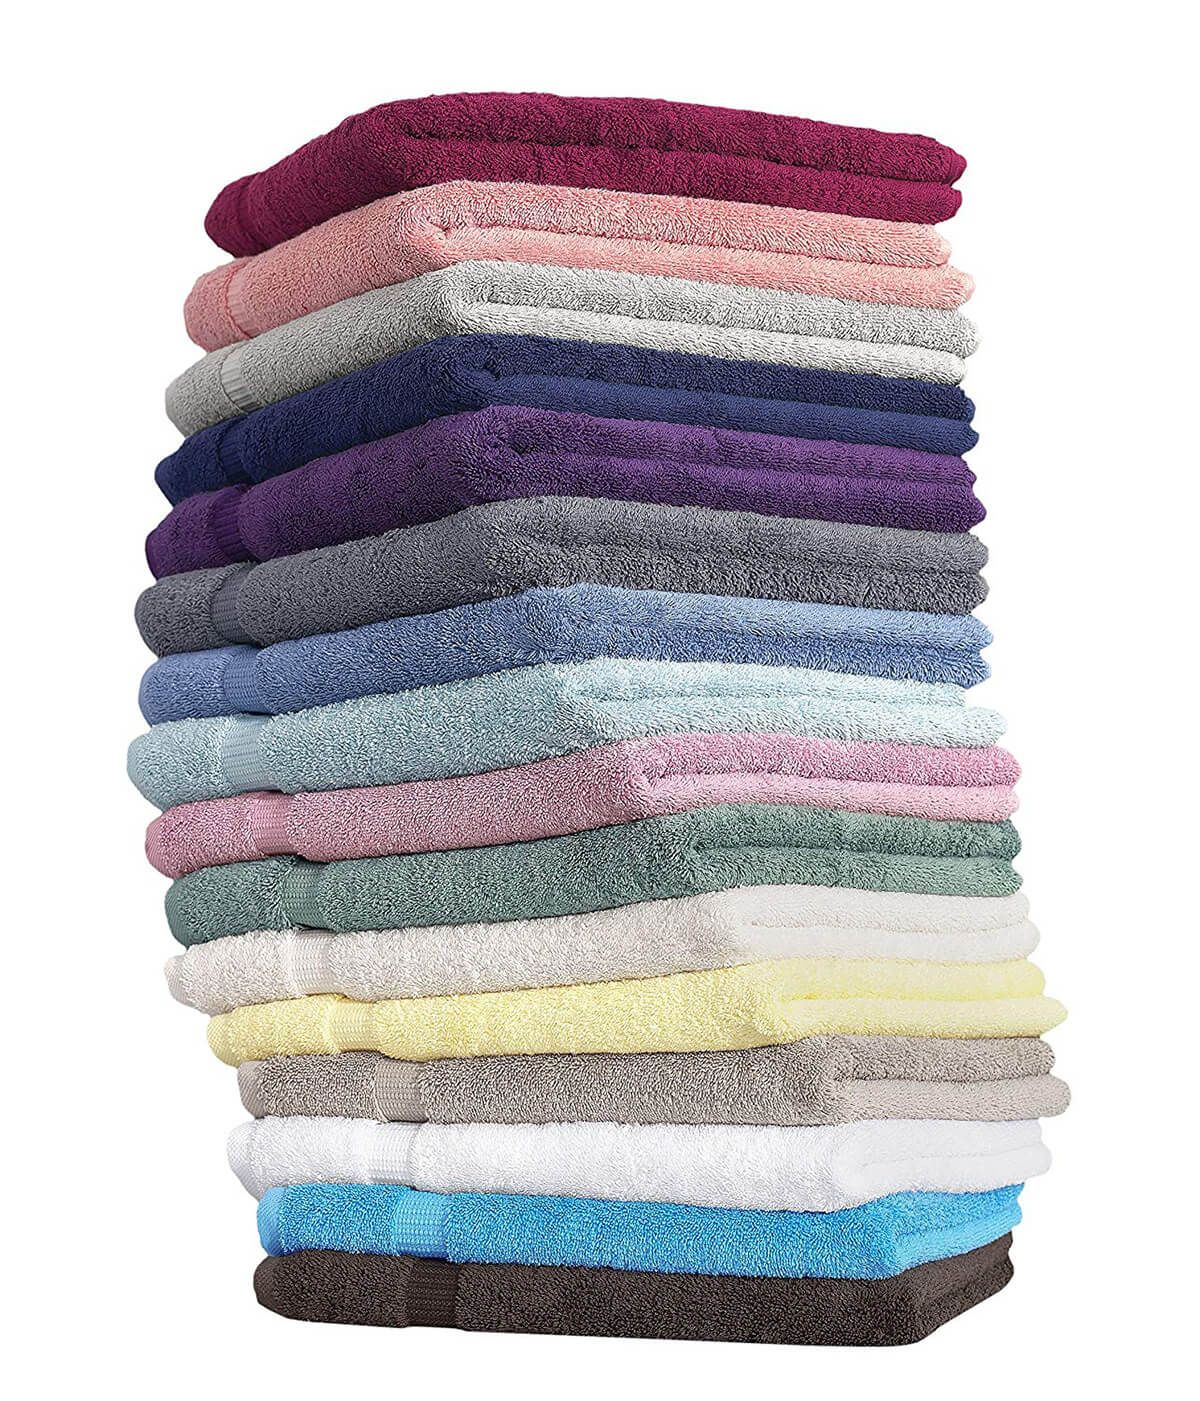 27 High Quality Bath Towels That Will Turn Your Bathroom Into A